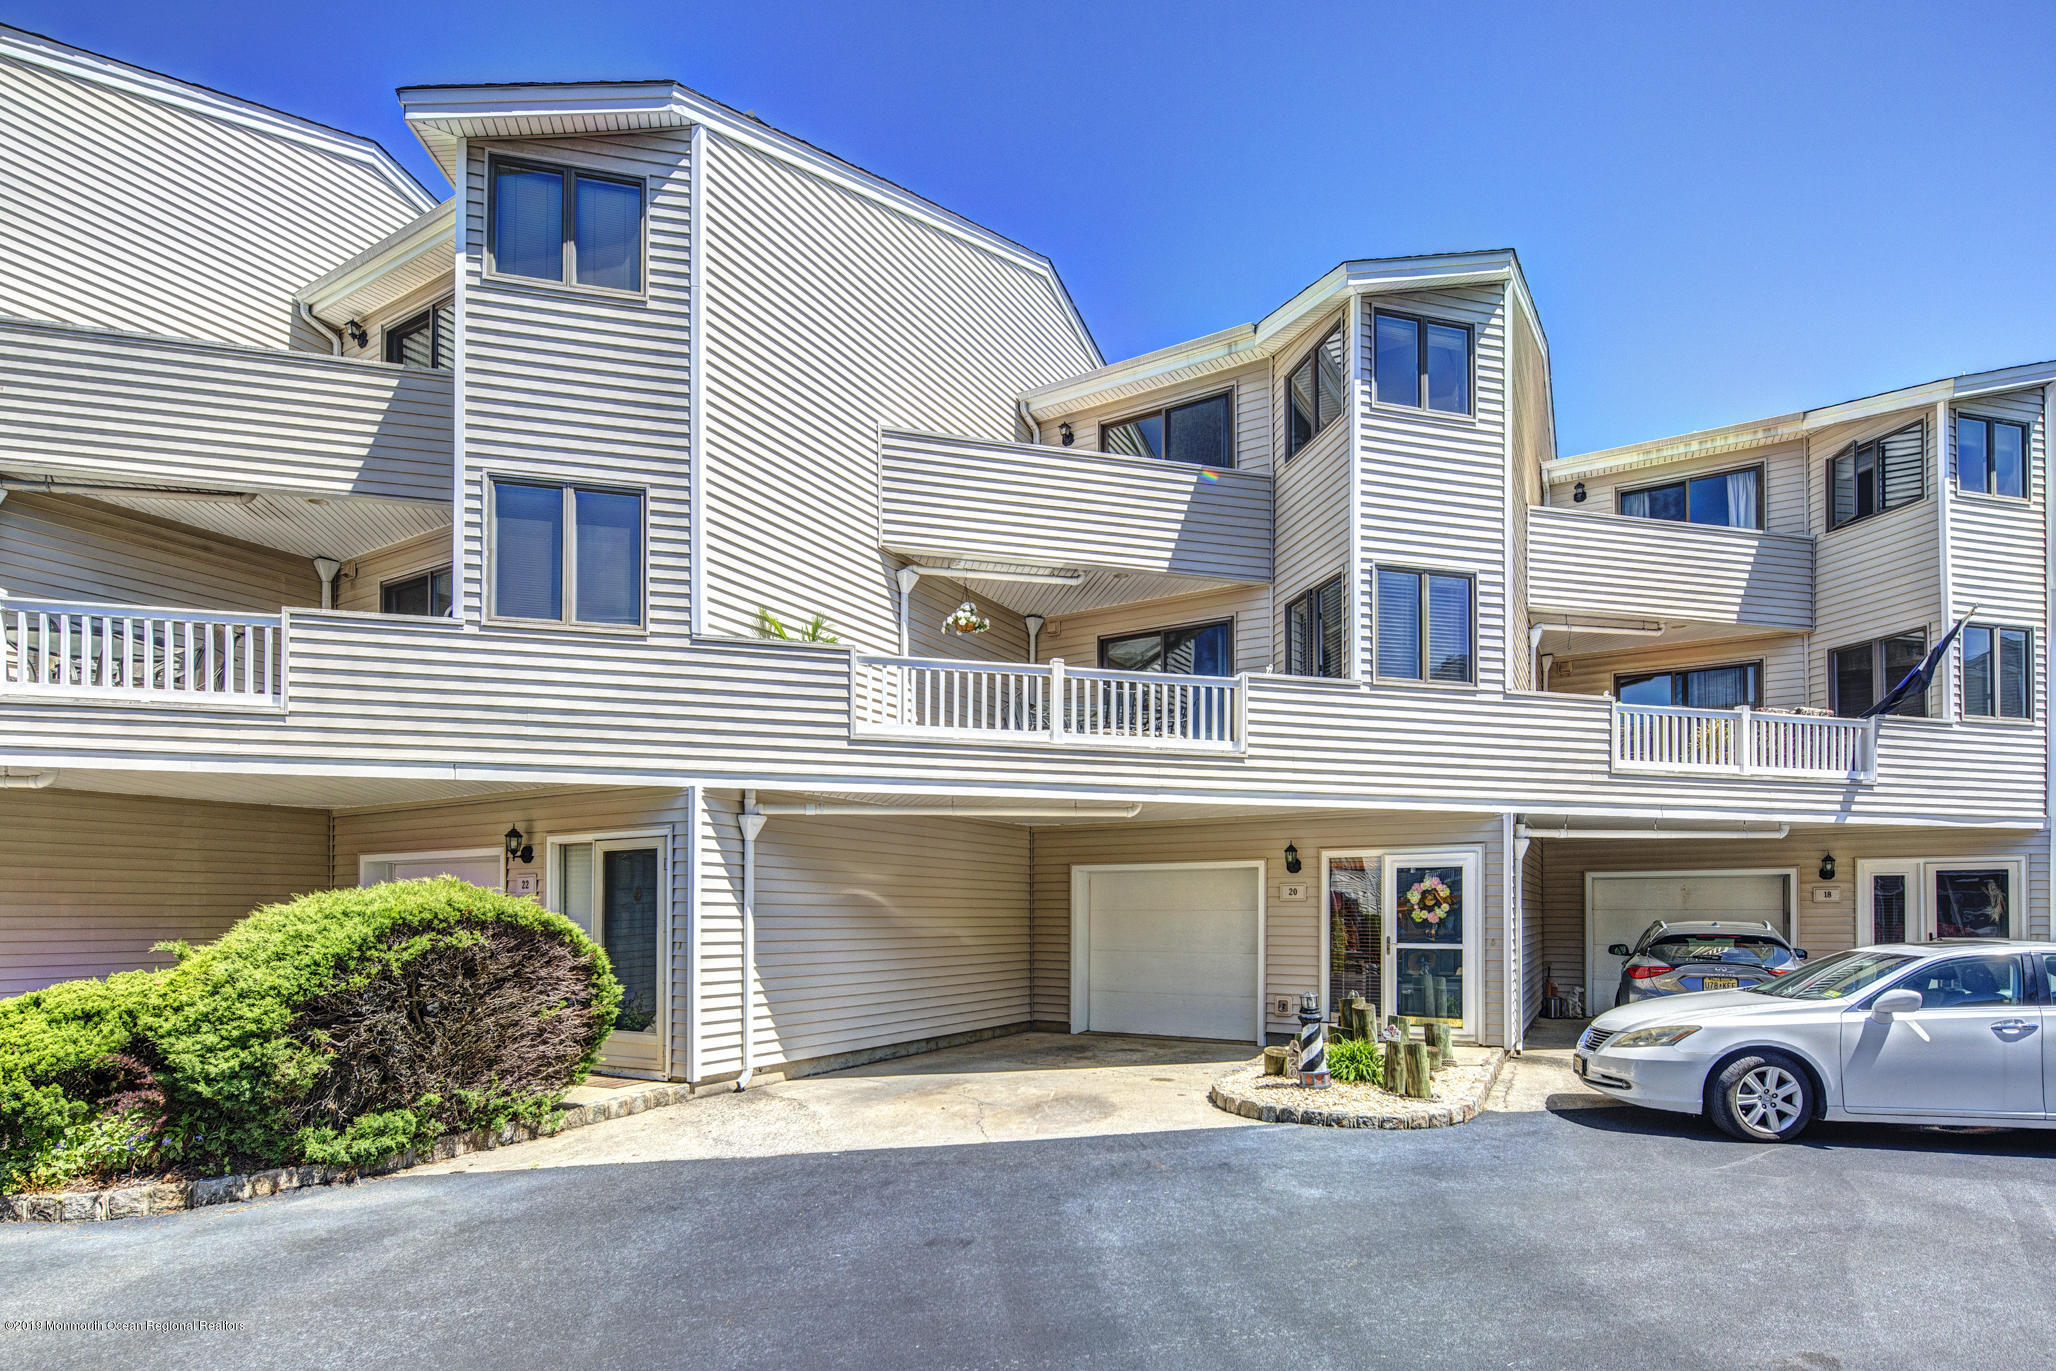 Photo of 20 Sunset Avenue, Long Branch, NJ 07740